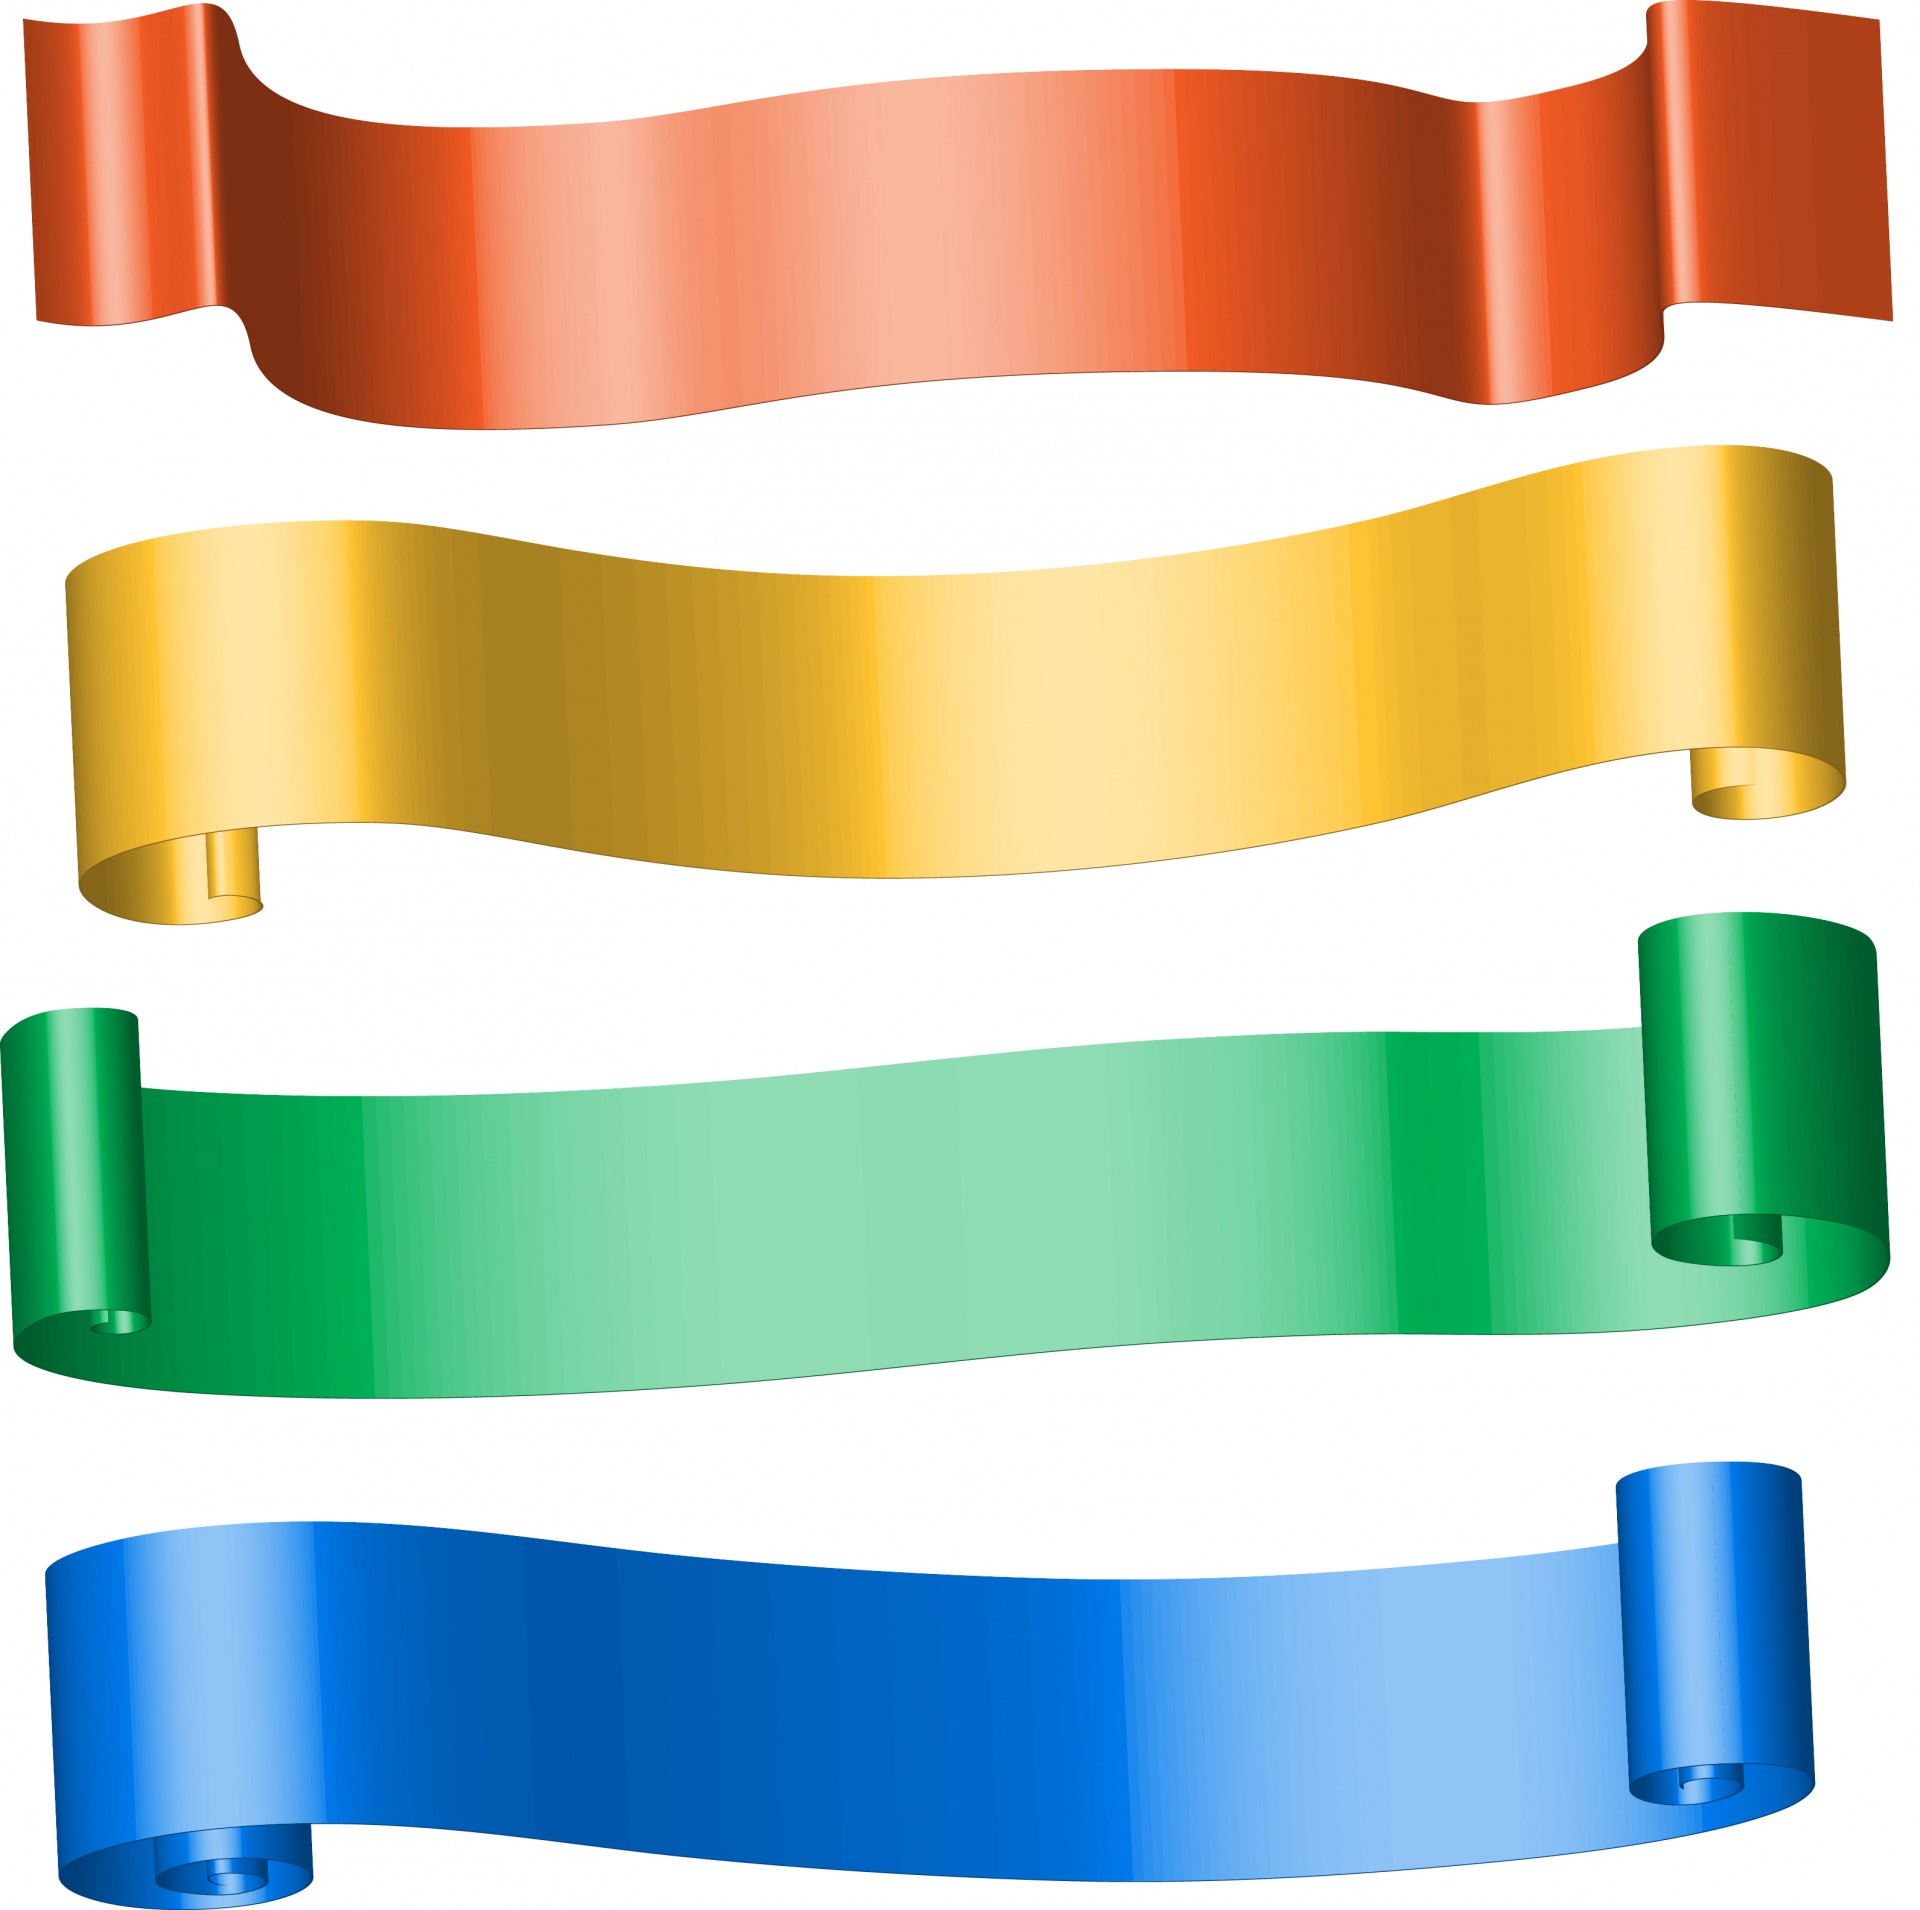 colour-ribbon-banners